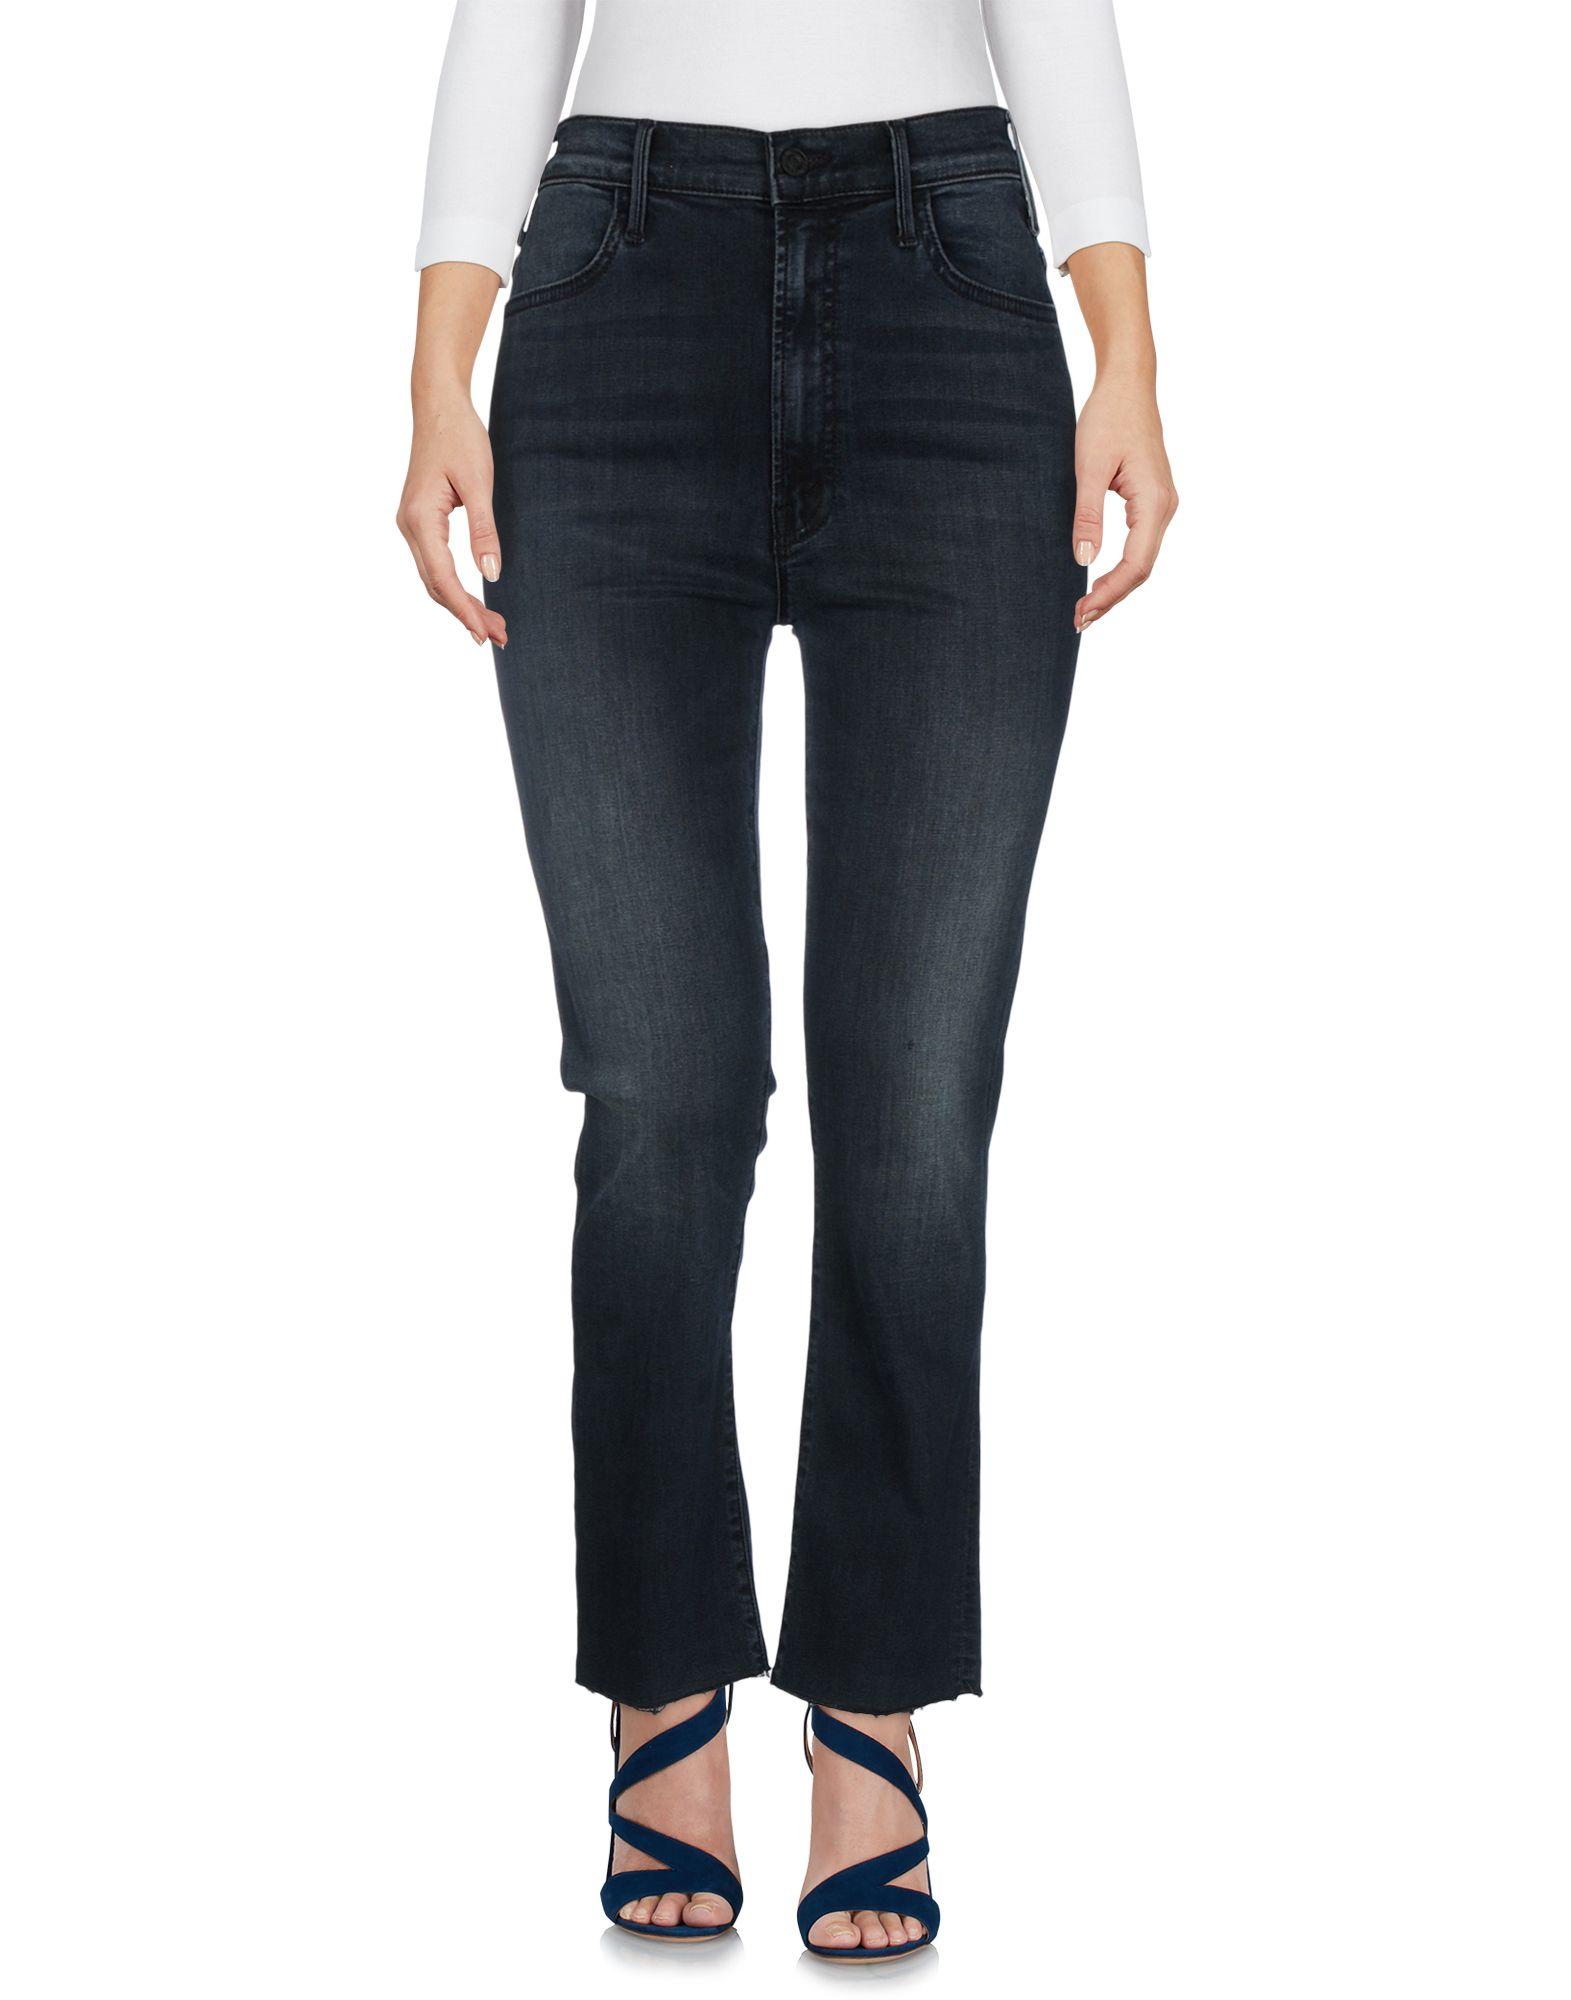 Pantaloni Jeans Mother Donna - Acquista online su keeobw